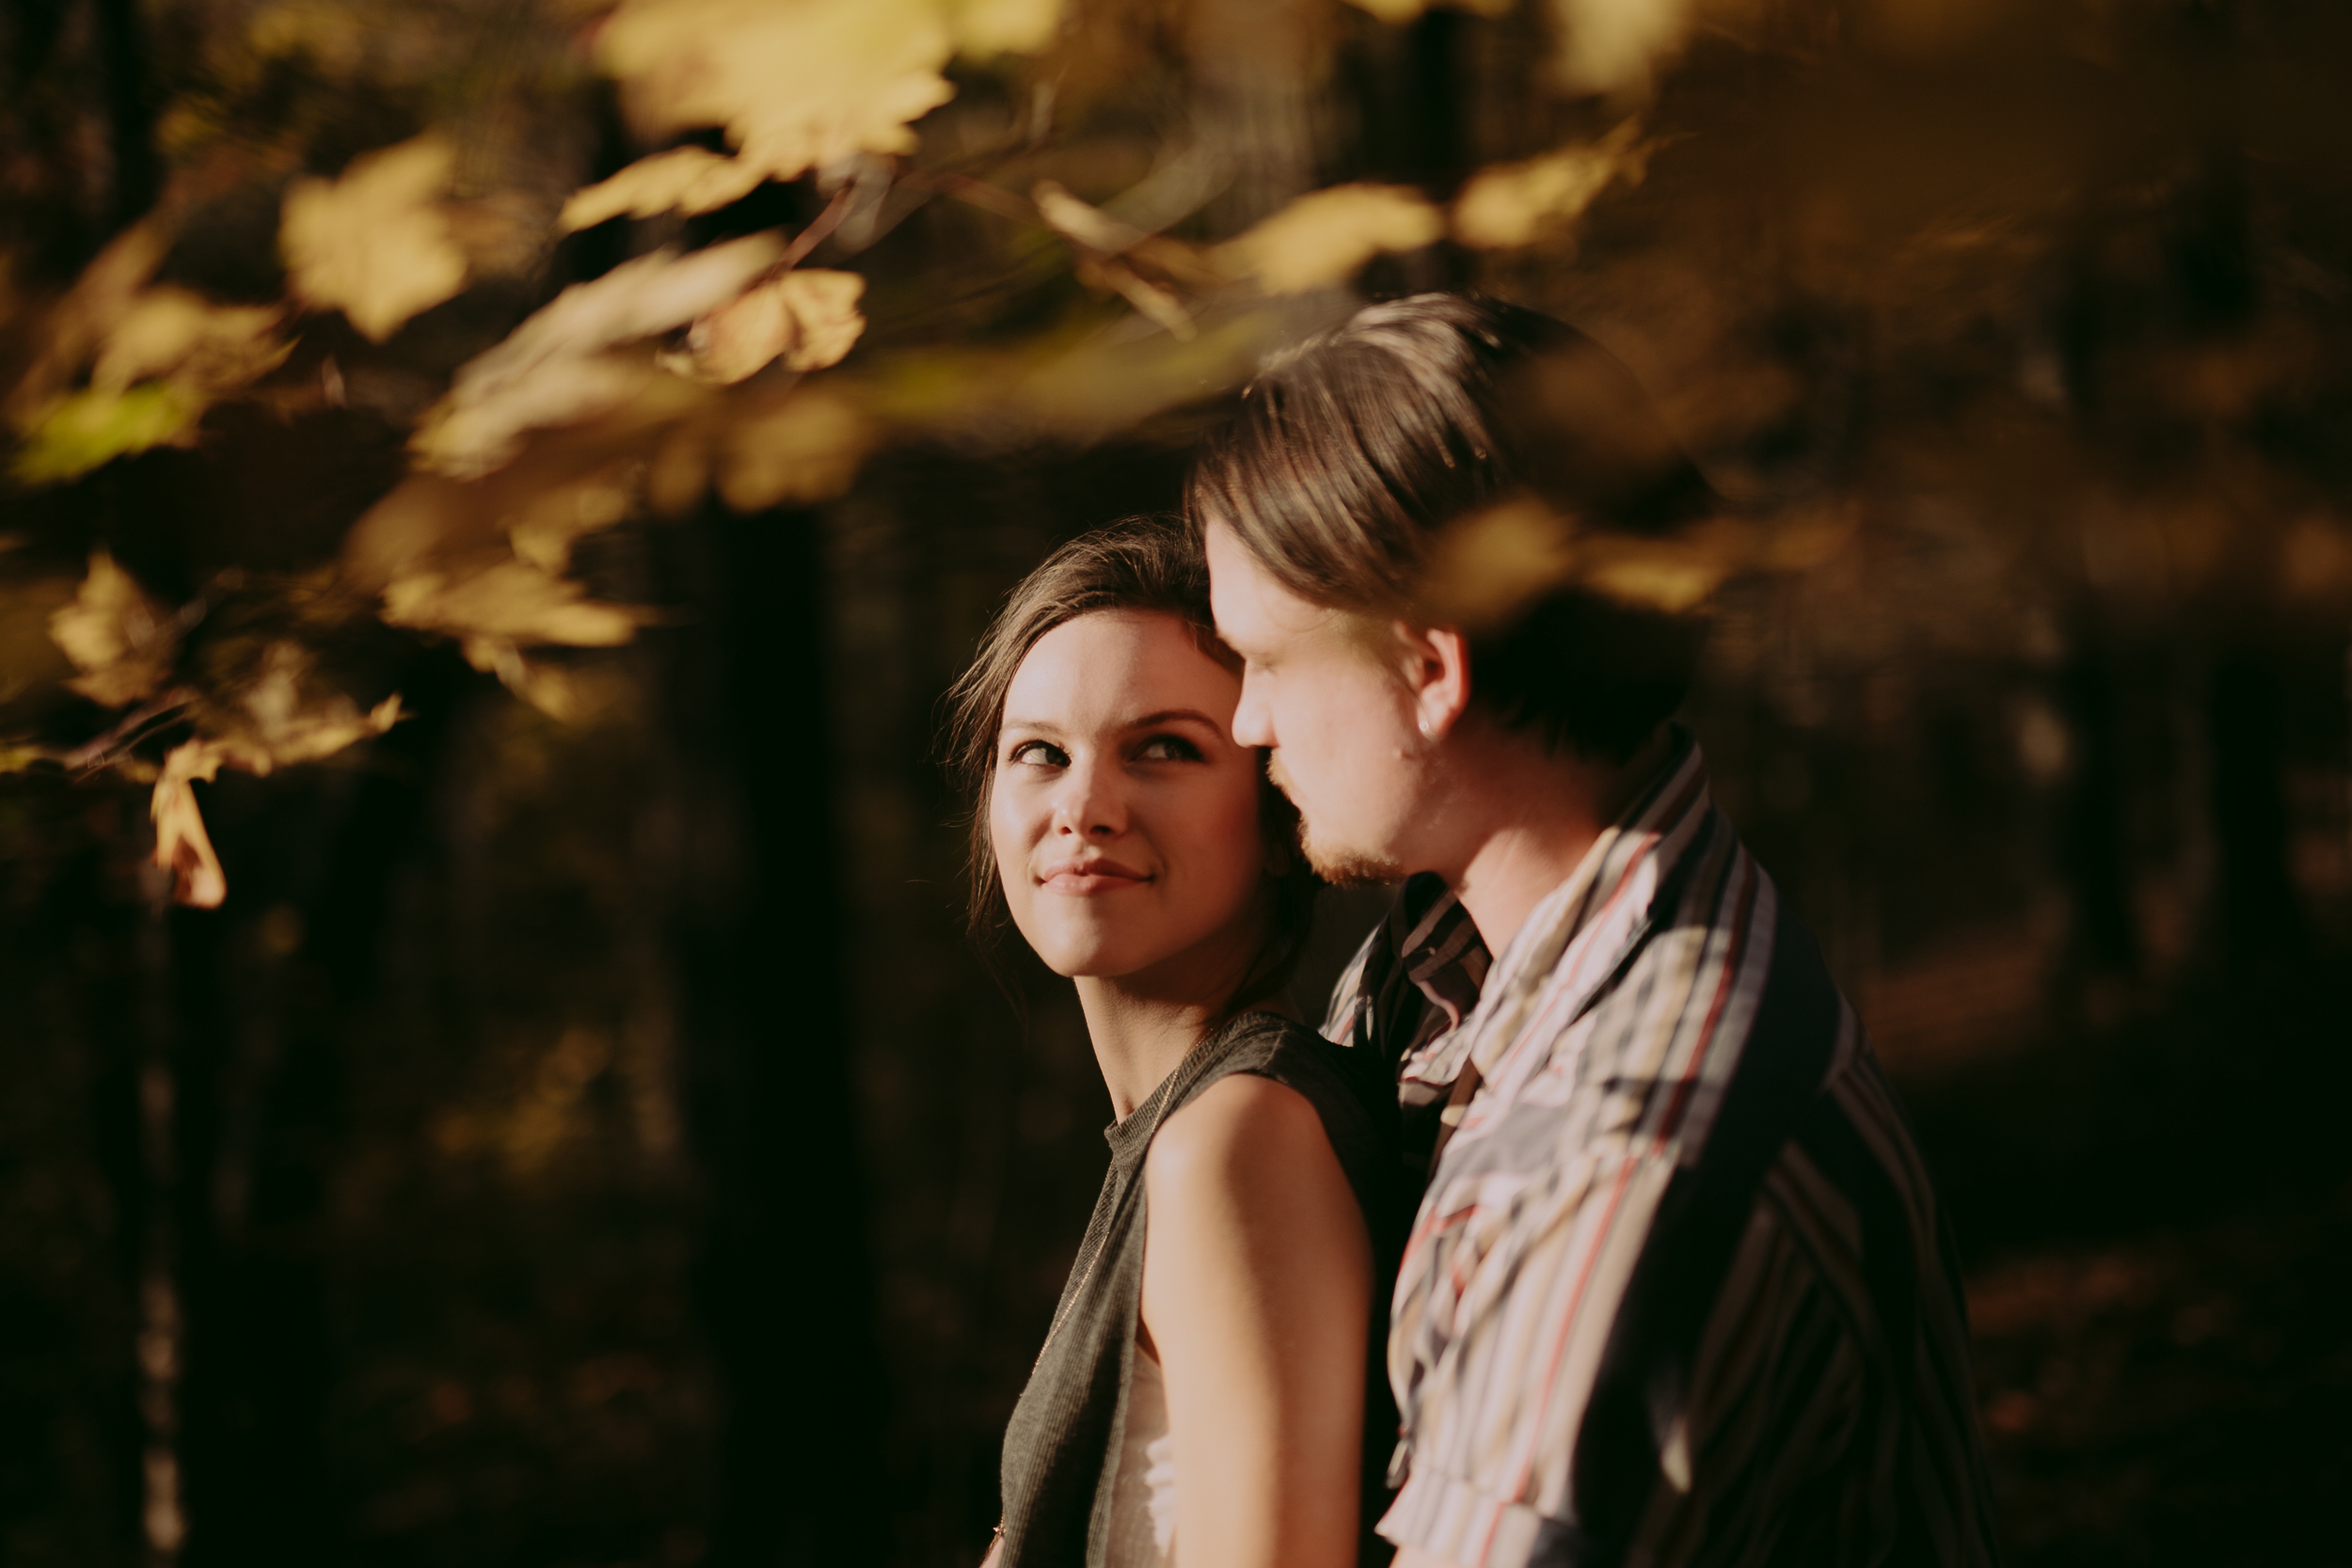 Hannah + Will Engagement Photos at Percy Warner Photography Anthology (16 of 30).jpg